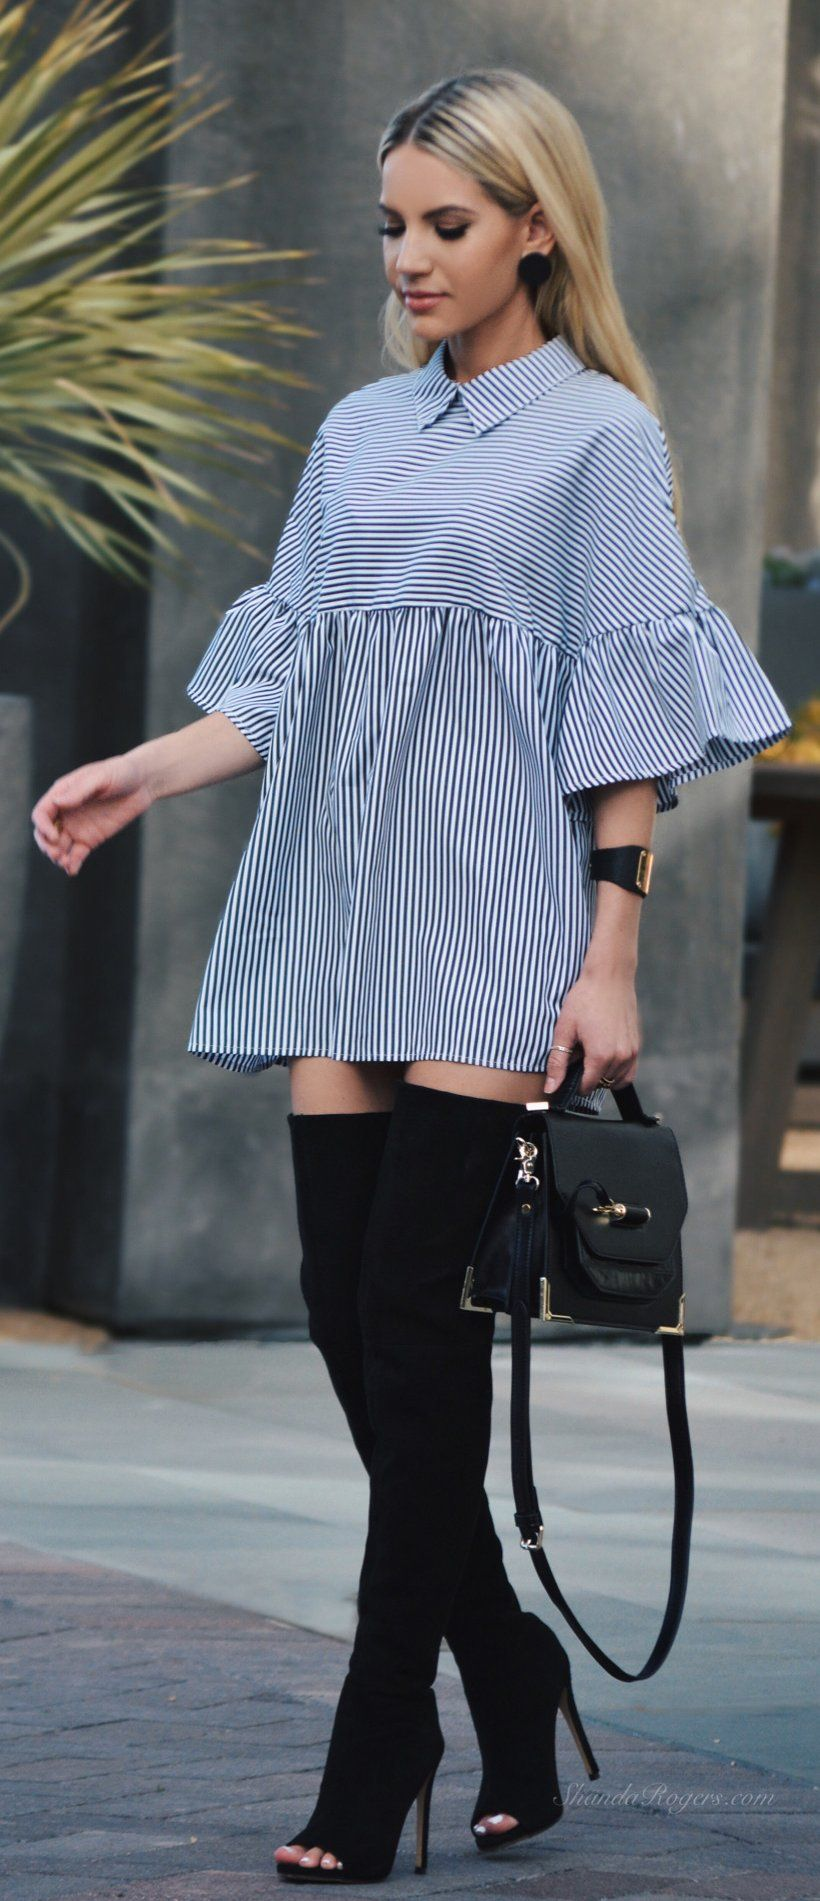 Striped Shirt Dress Black Open Toe Otk Boots Thigh High Boots Outfit High Knee Boots Outfit Summer Boots Outfit